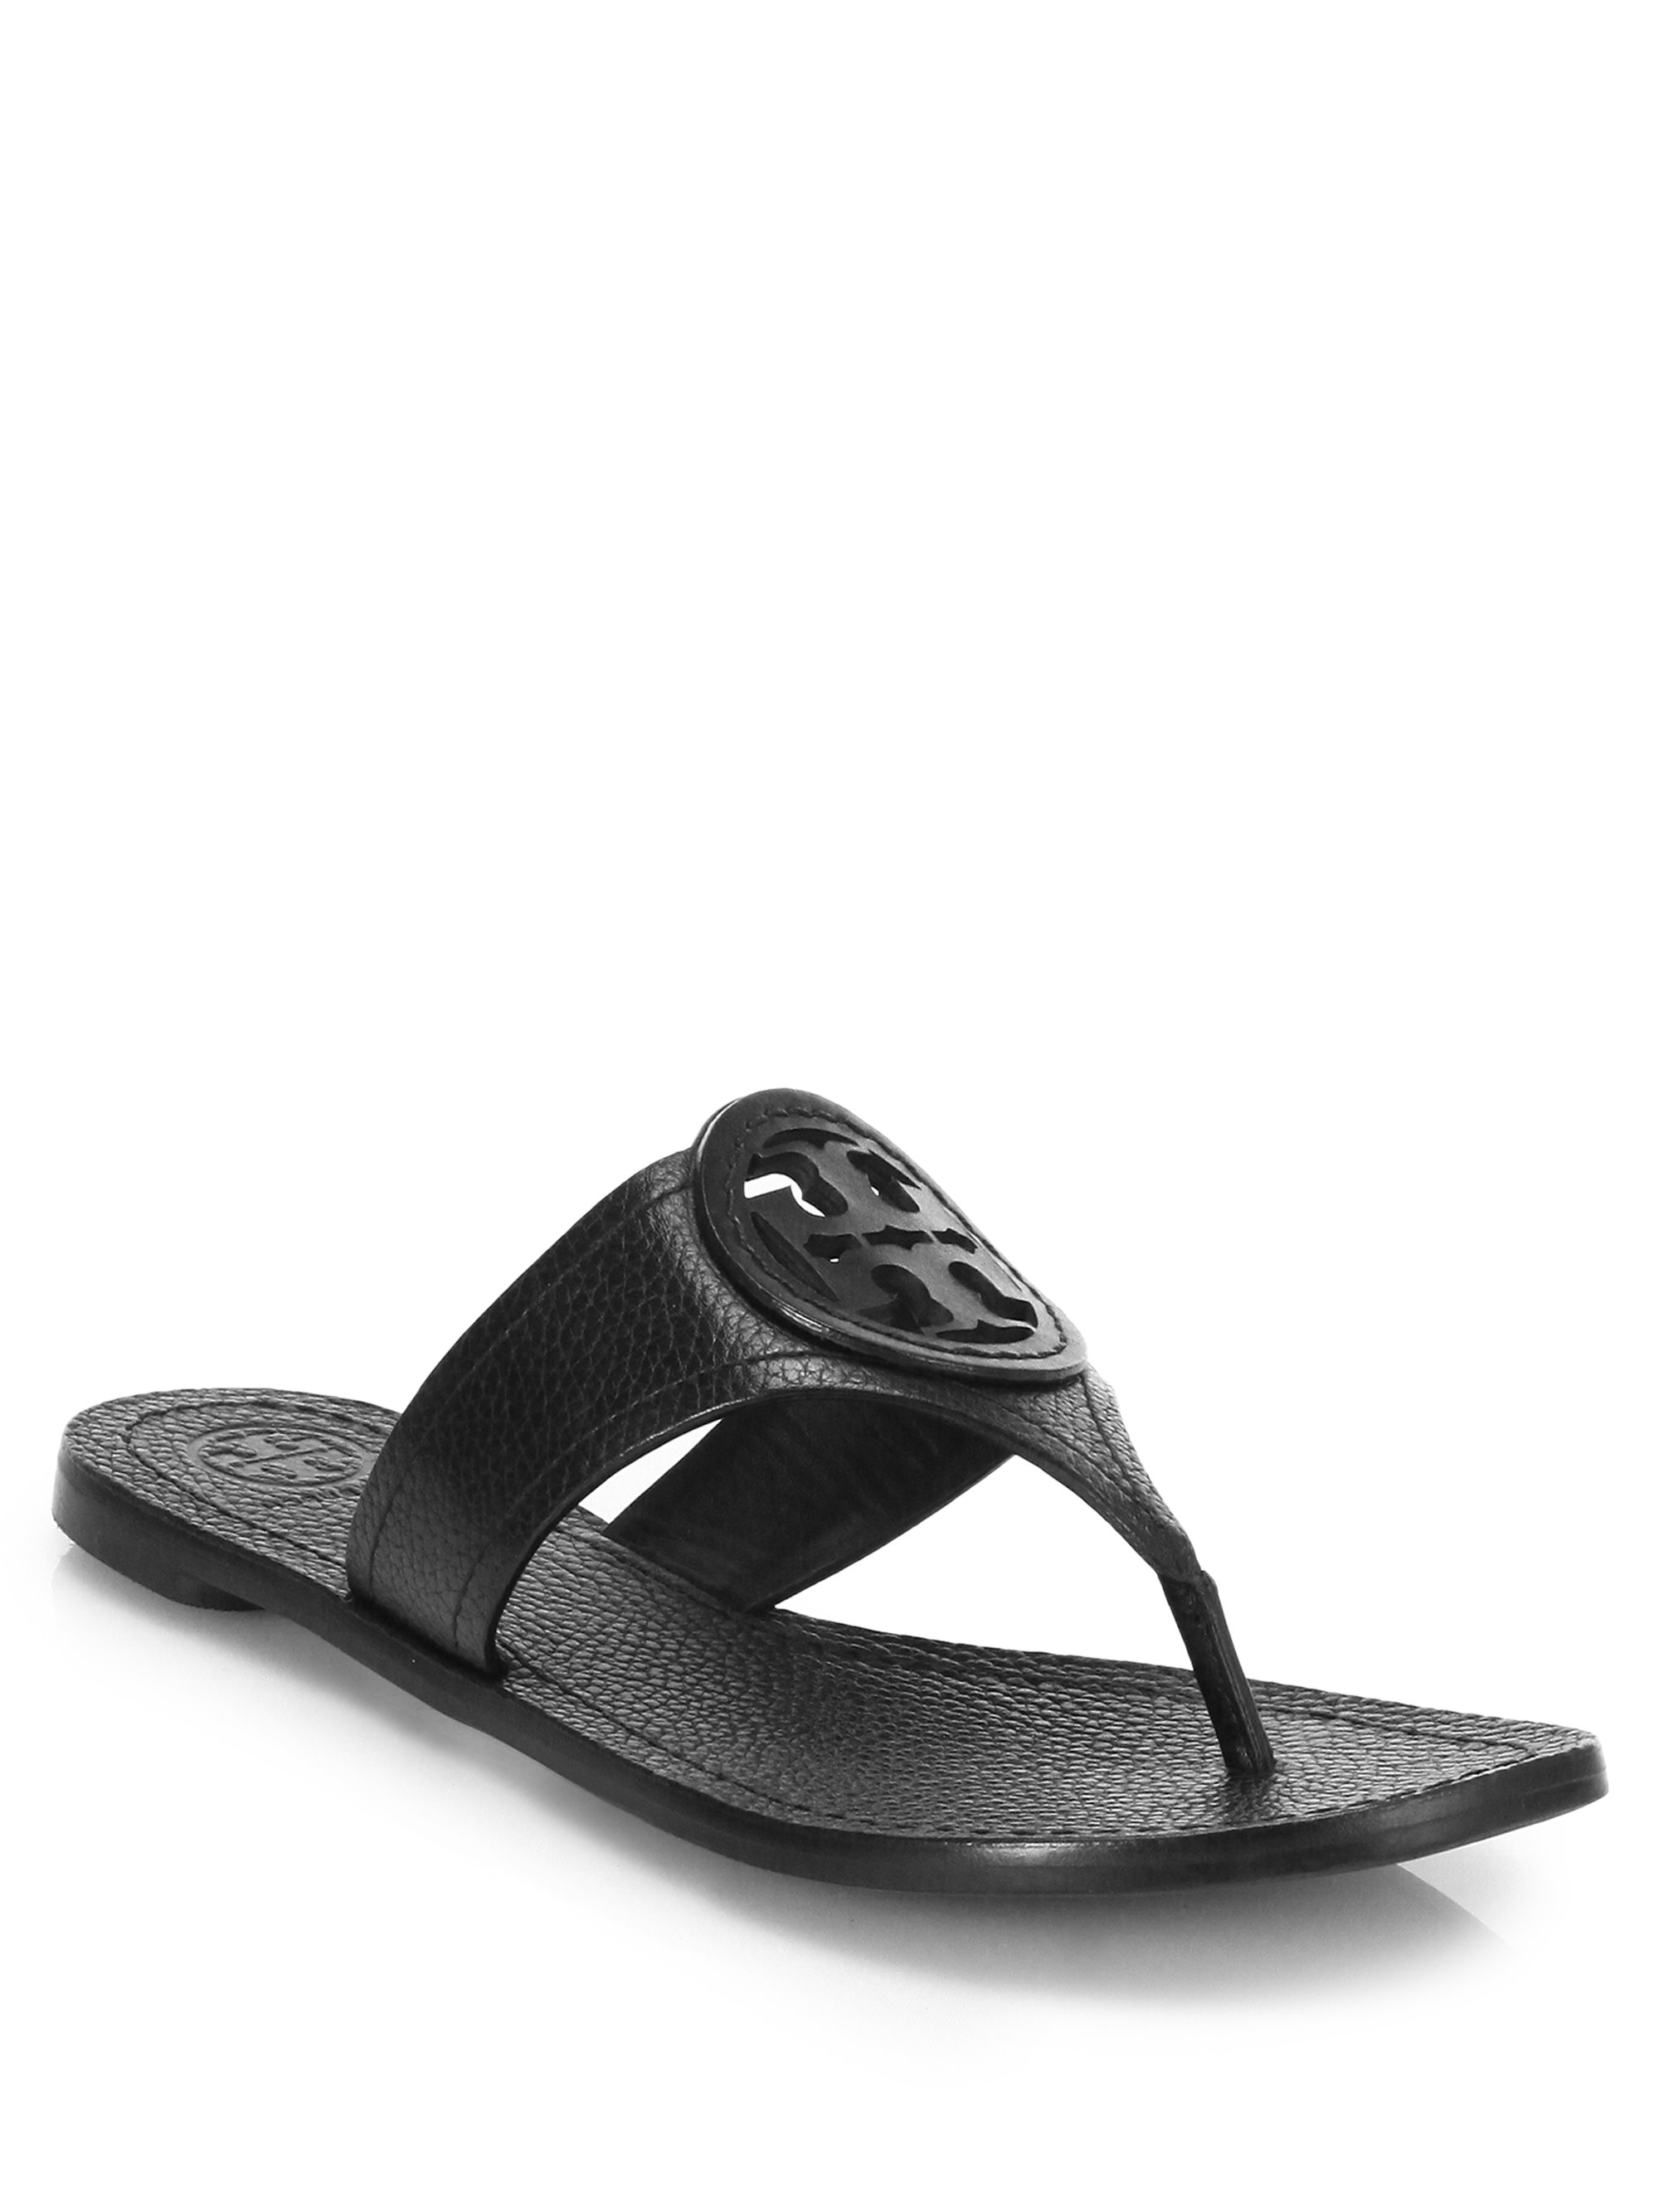 c56221e51f354d Tory Burch Louisa Leather Thong Sandal in Black